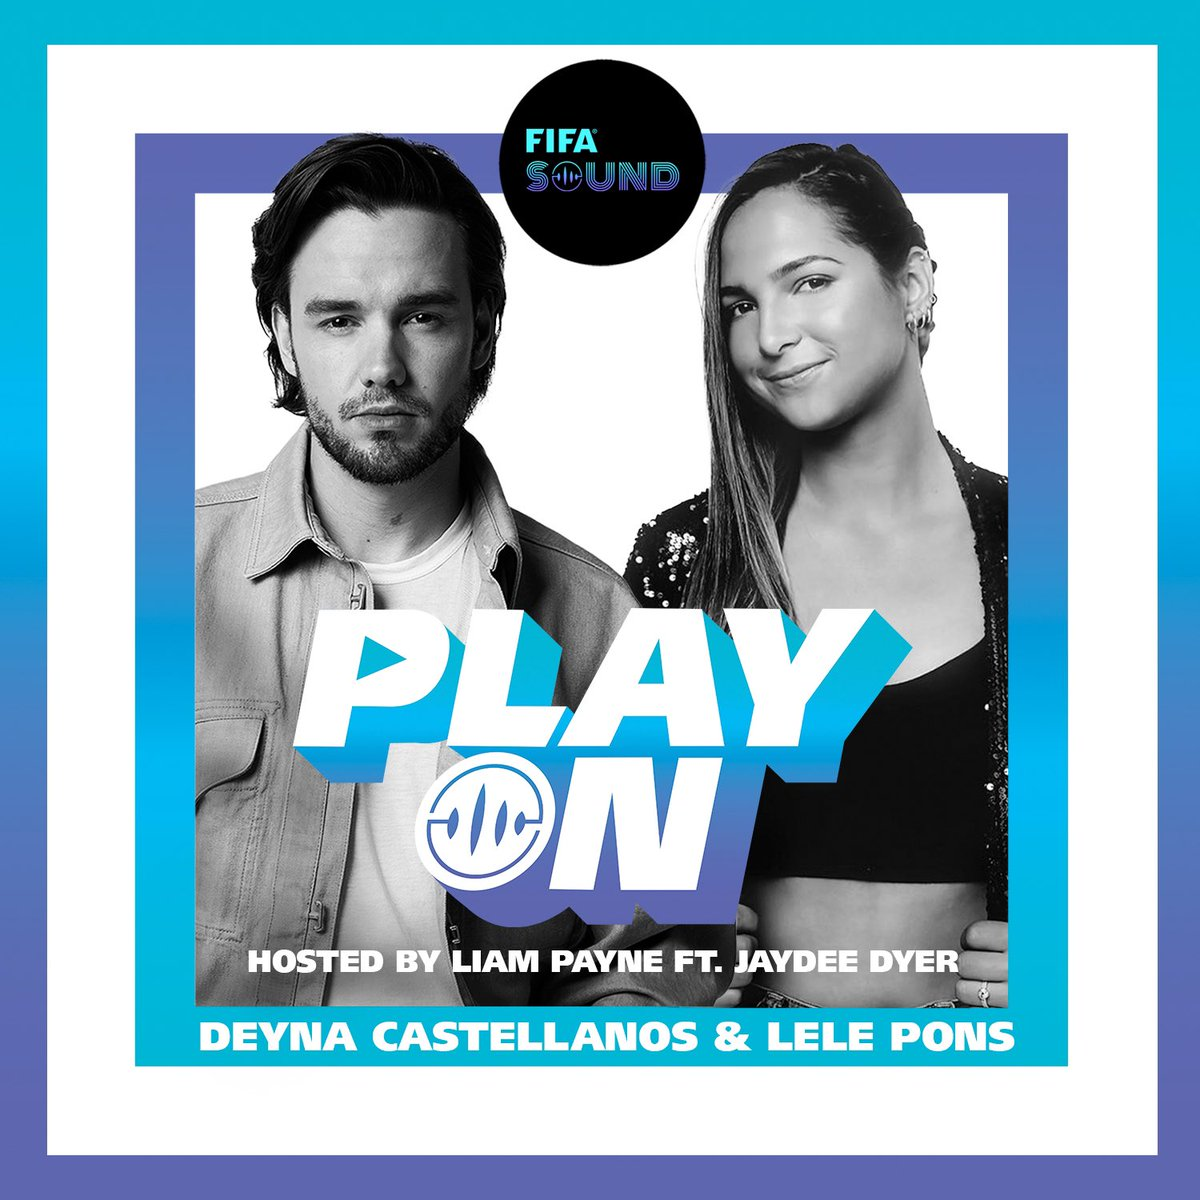 Episode 4 of the FIFA PlayOn podcast is out now 🙌🏼 https://t.co/Jn0GMeYyHm Joining me this week are two Venezuelan powerhouses @deynac18 & @lelepons #fifasound #playon https://t.co/wTE5wlSD5E